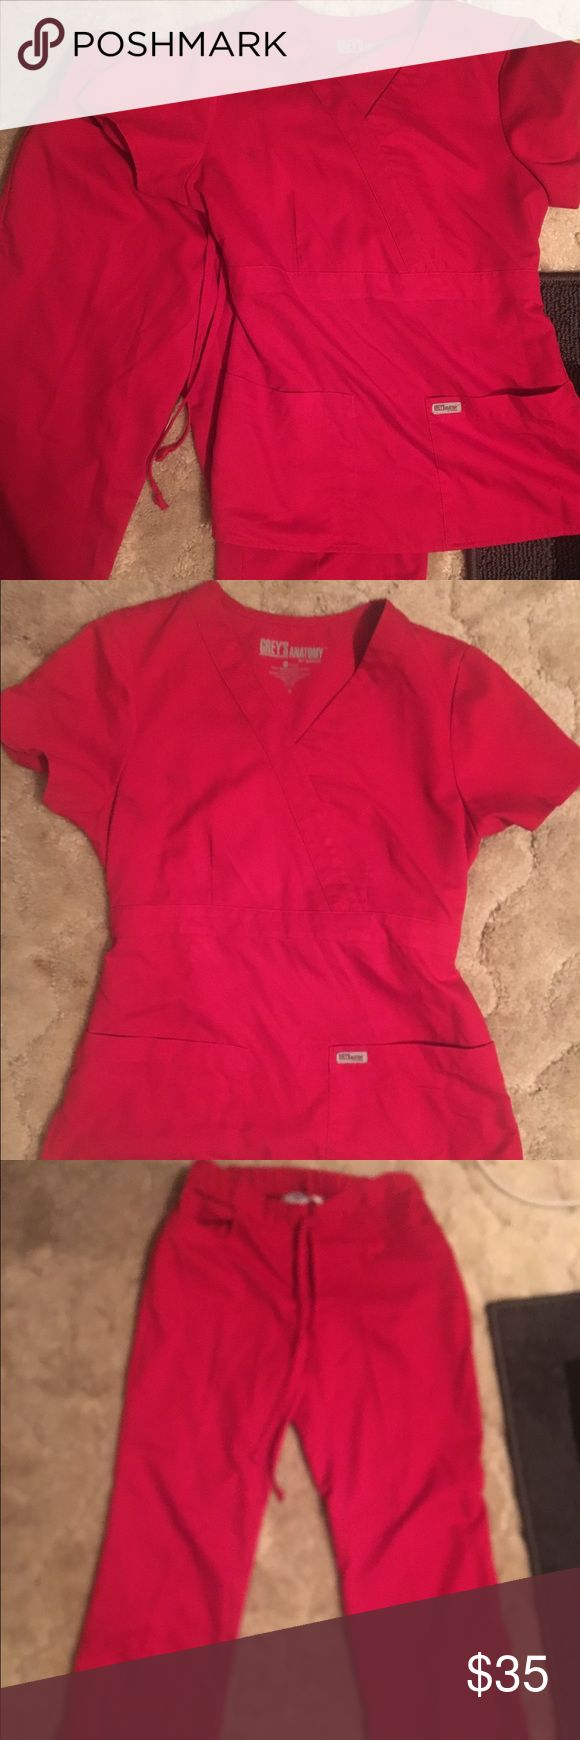 Grey's anatomy scrubs Small set of red Grey's Anatomy scrubs. Excellent shape. Regular length. Other